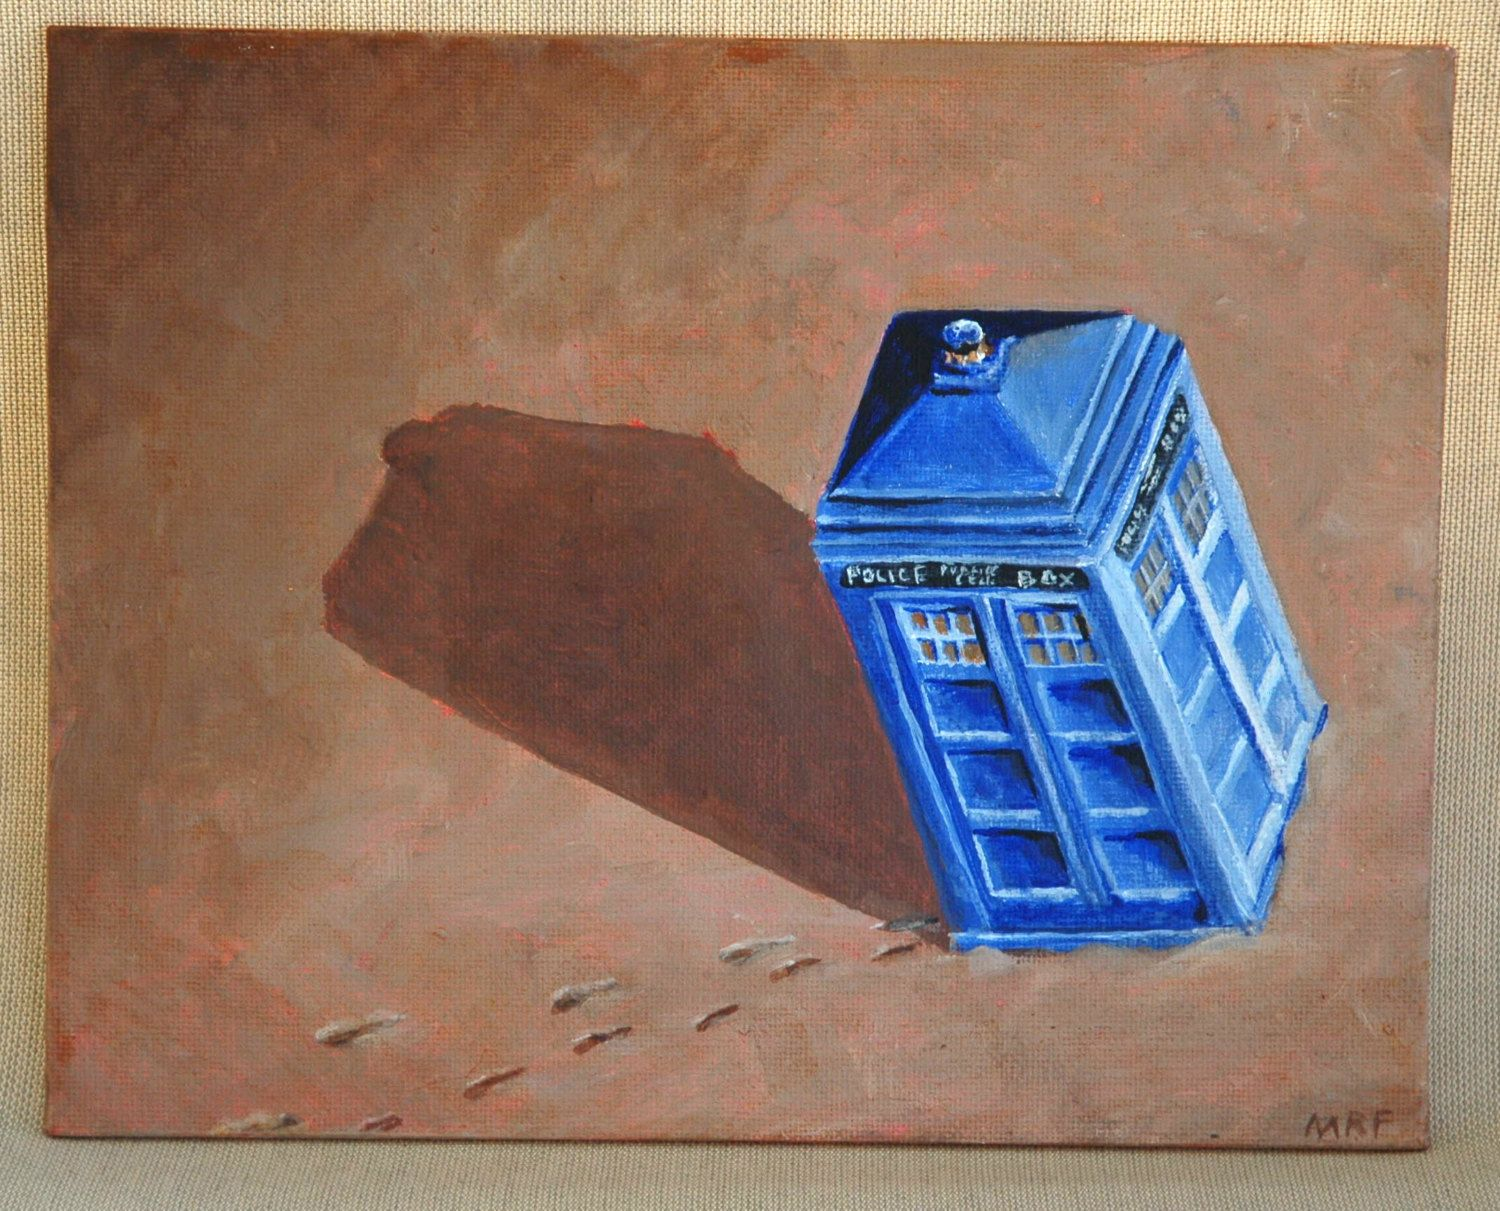 """Parked TARDIS Doctor Who Police Phone Box Original Acrylic Painting 8"""" x 10"""" by dragonbee on Etsy"""